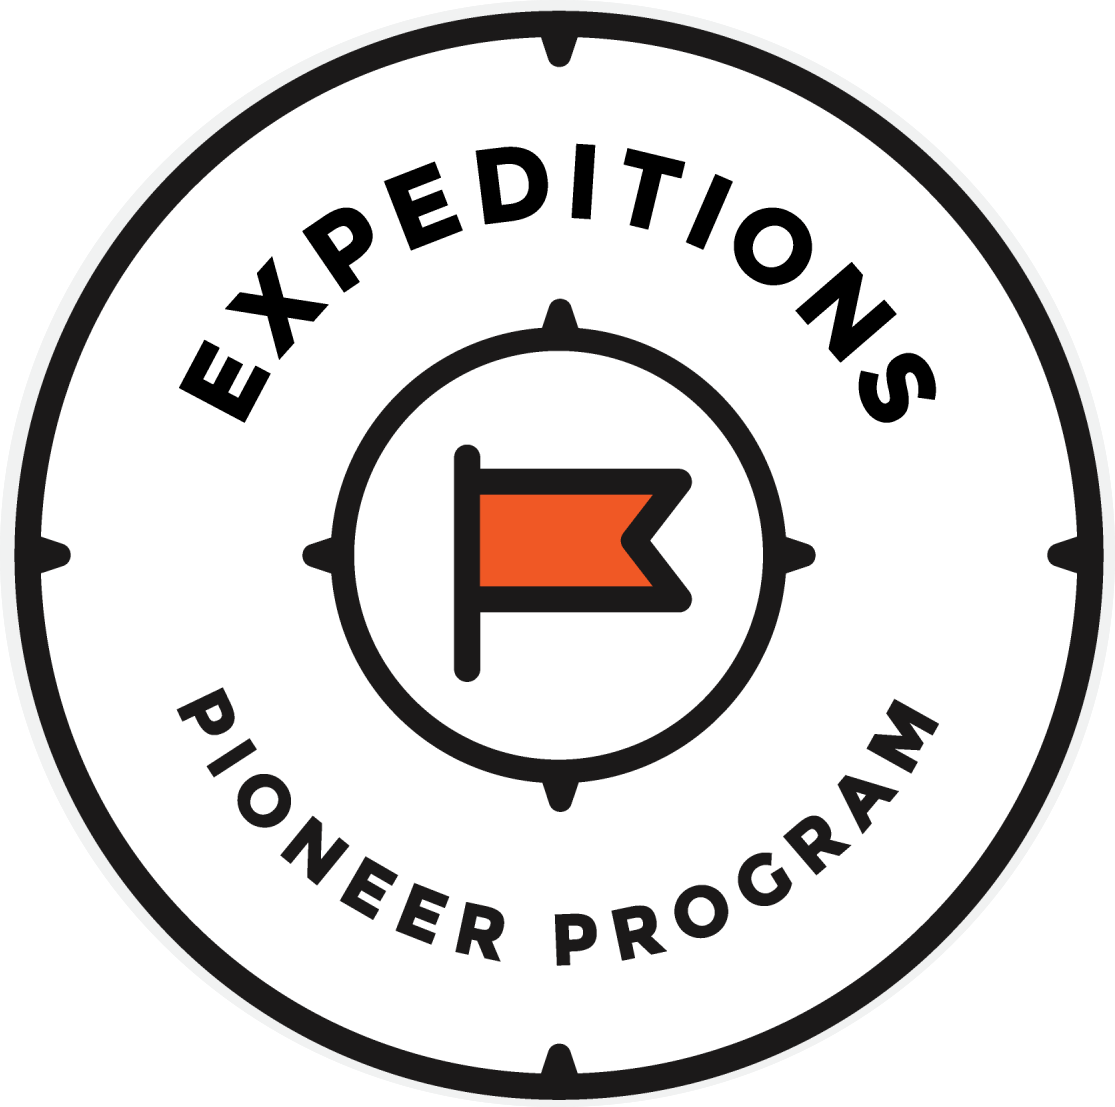 Google Expedition Pioneer Programme!